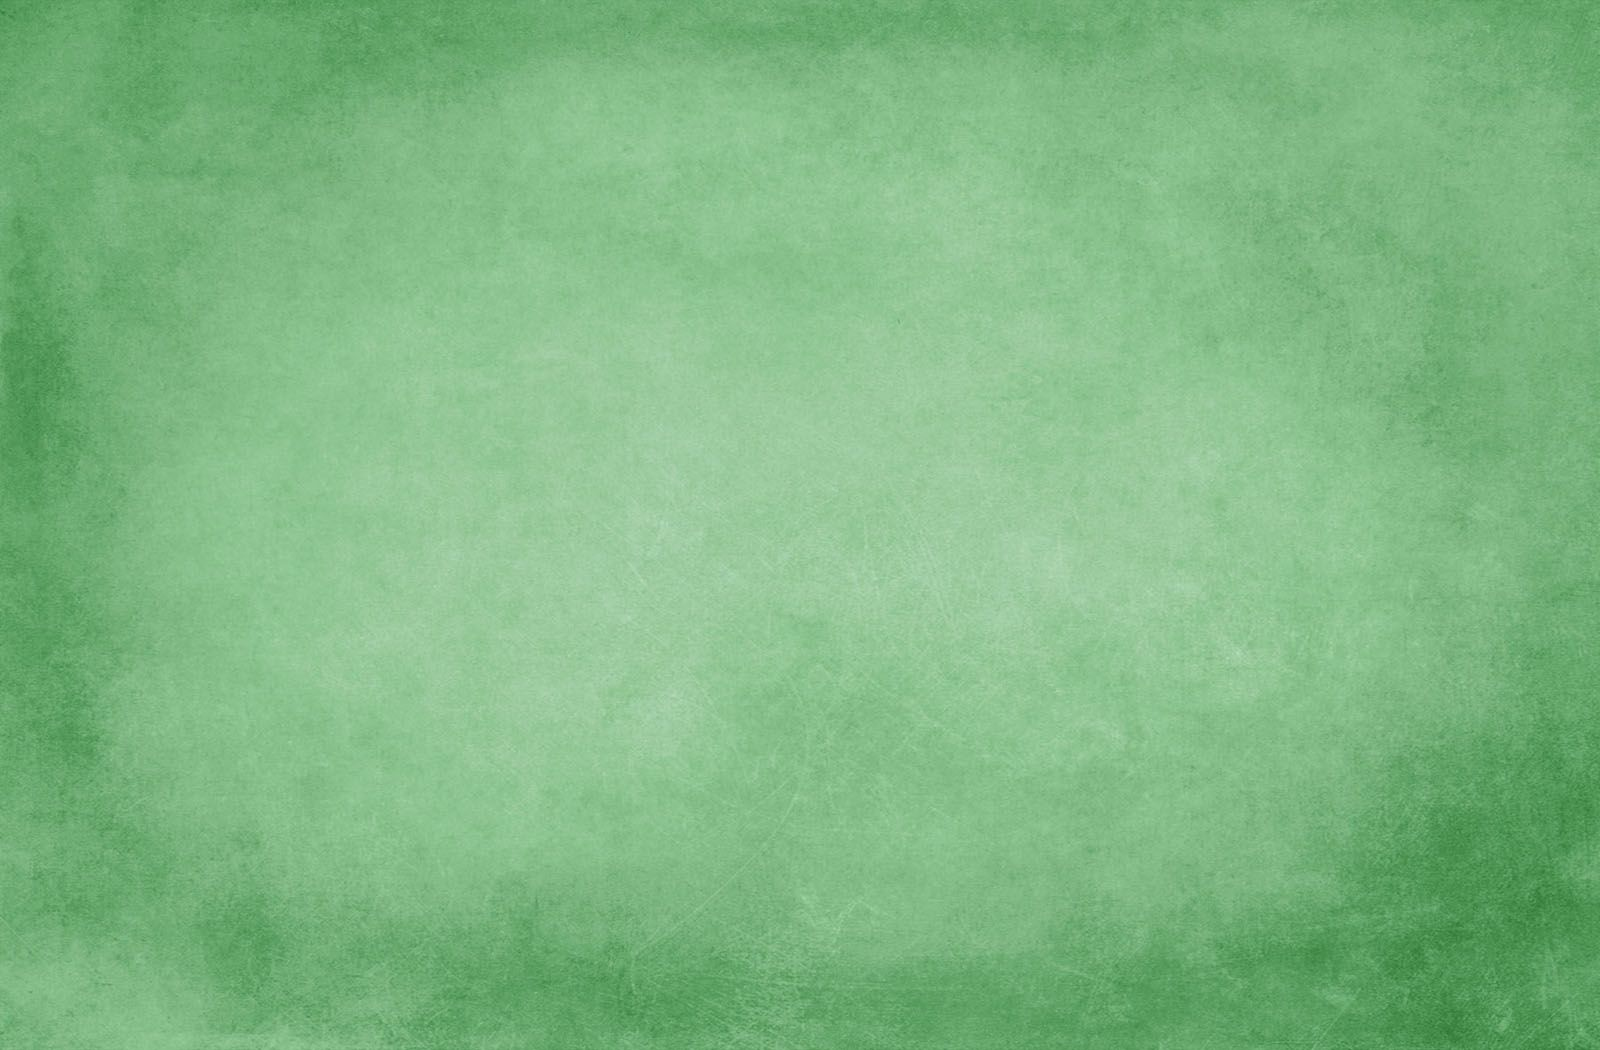 Cool Solid Color Backgrounds  solid green backgrounds categories